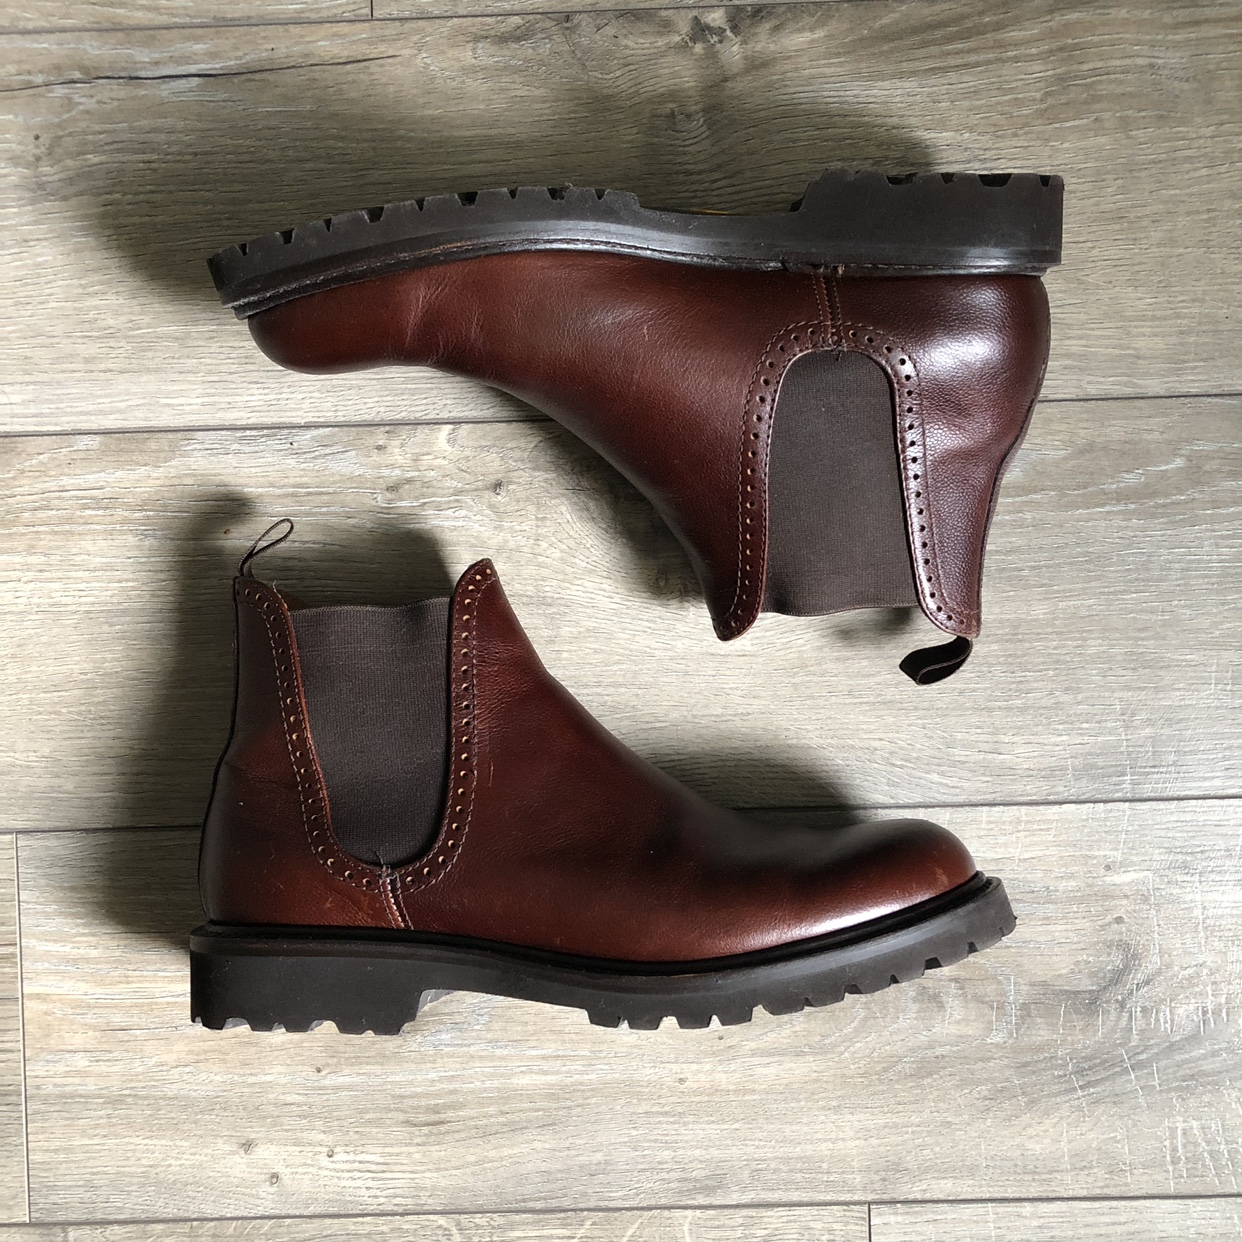 274856be740 Wolverine Brown Cromwell Chelsea Boots Size: 9.5... - Depop